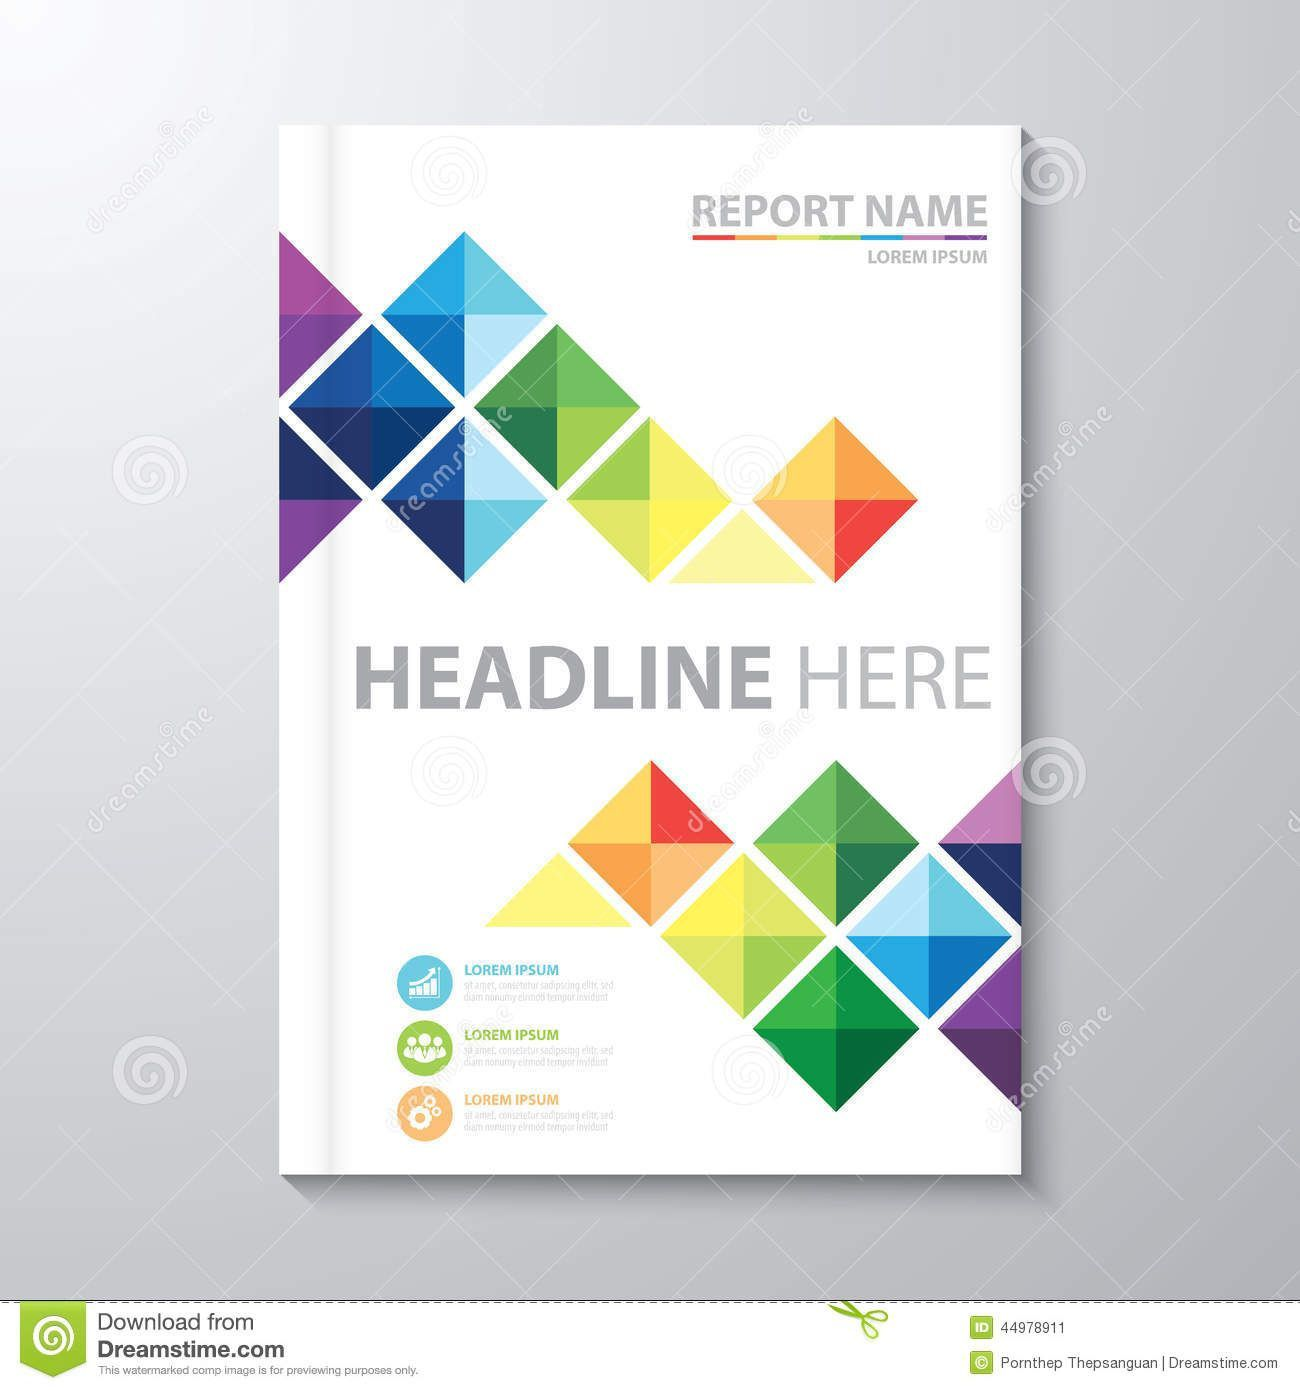 001 Incredible Free Download Annual Report Cover Design Template Example  Page In WordFull